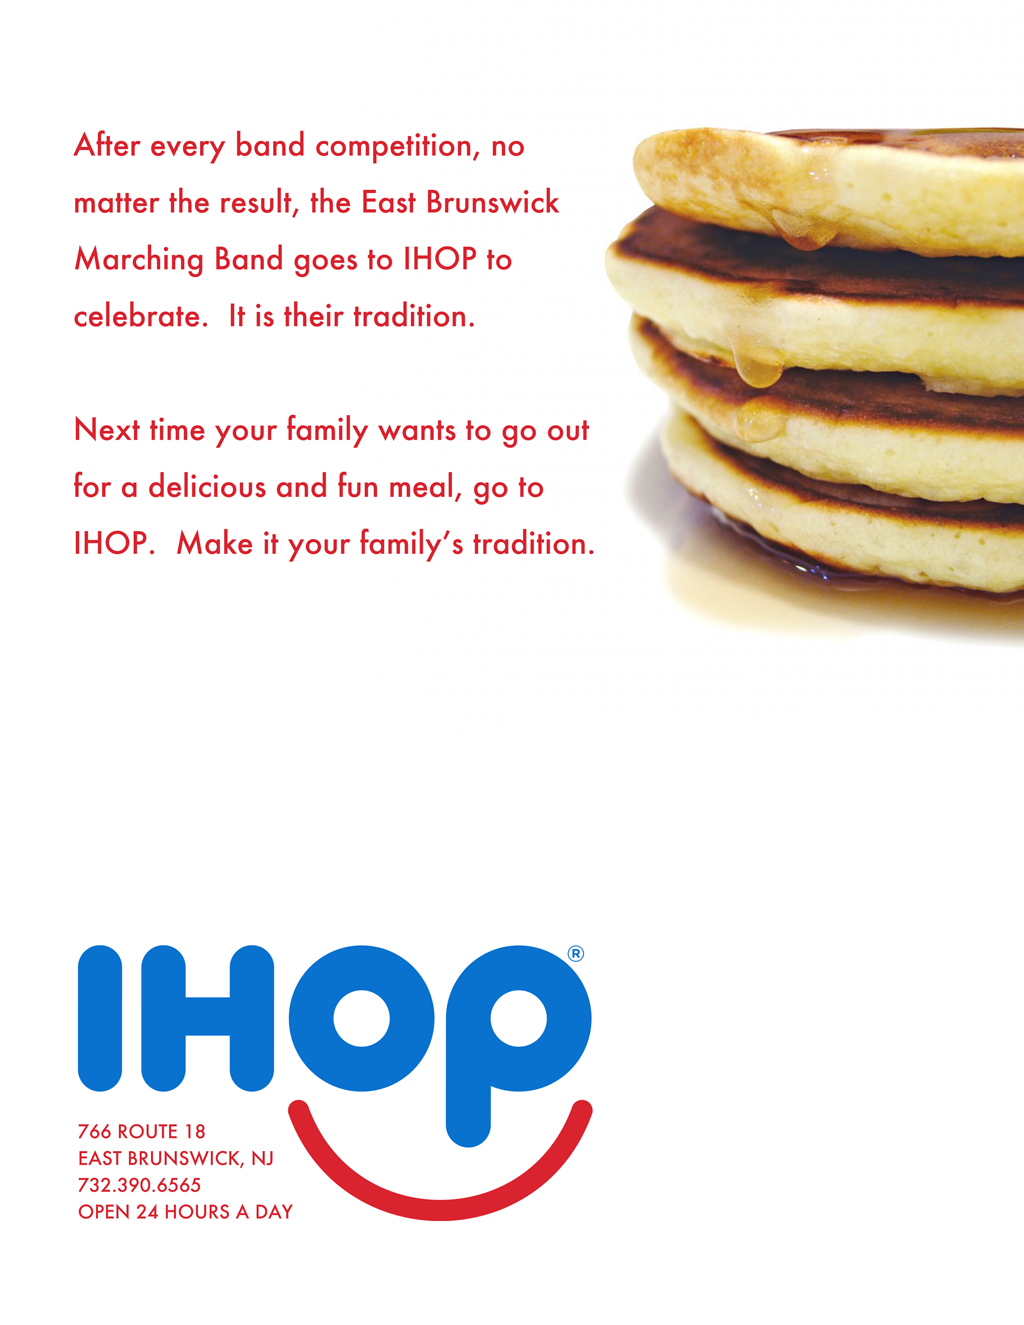 IHOP East Brunswick Band Ad - Appeared in the E.B. Marching Band Program Front Cover position.